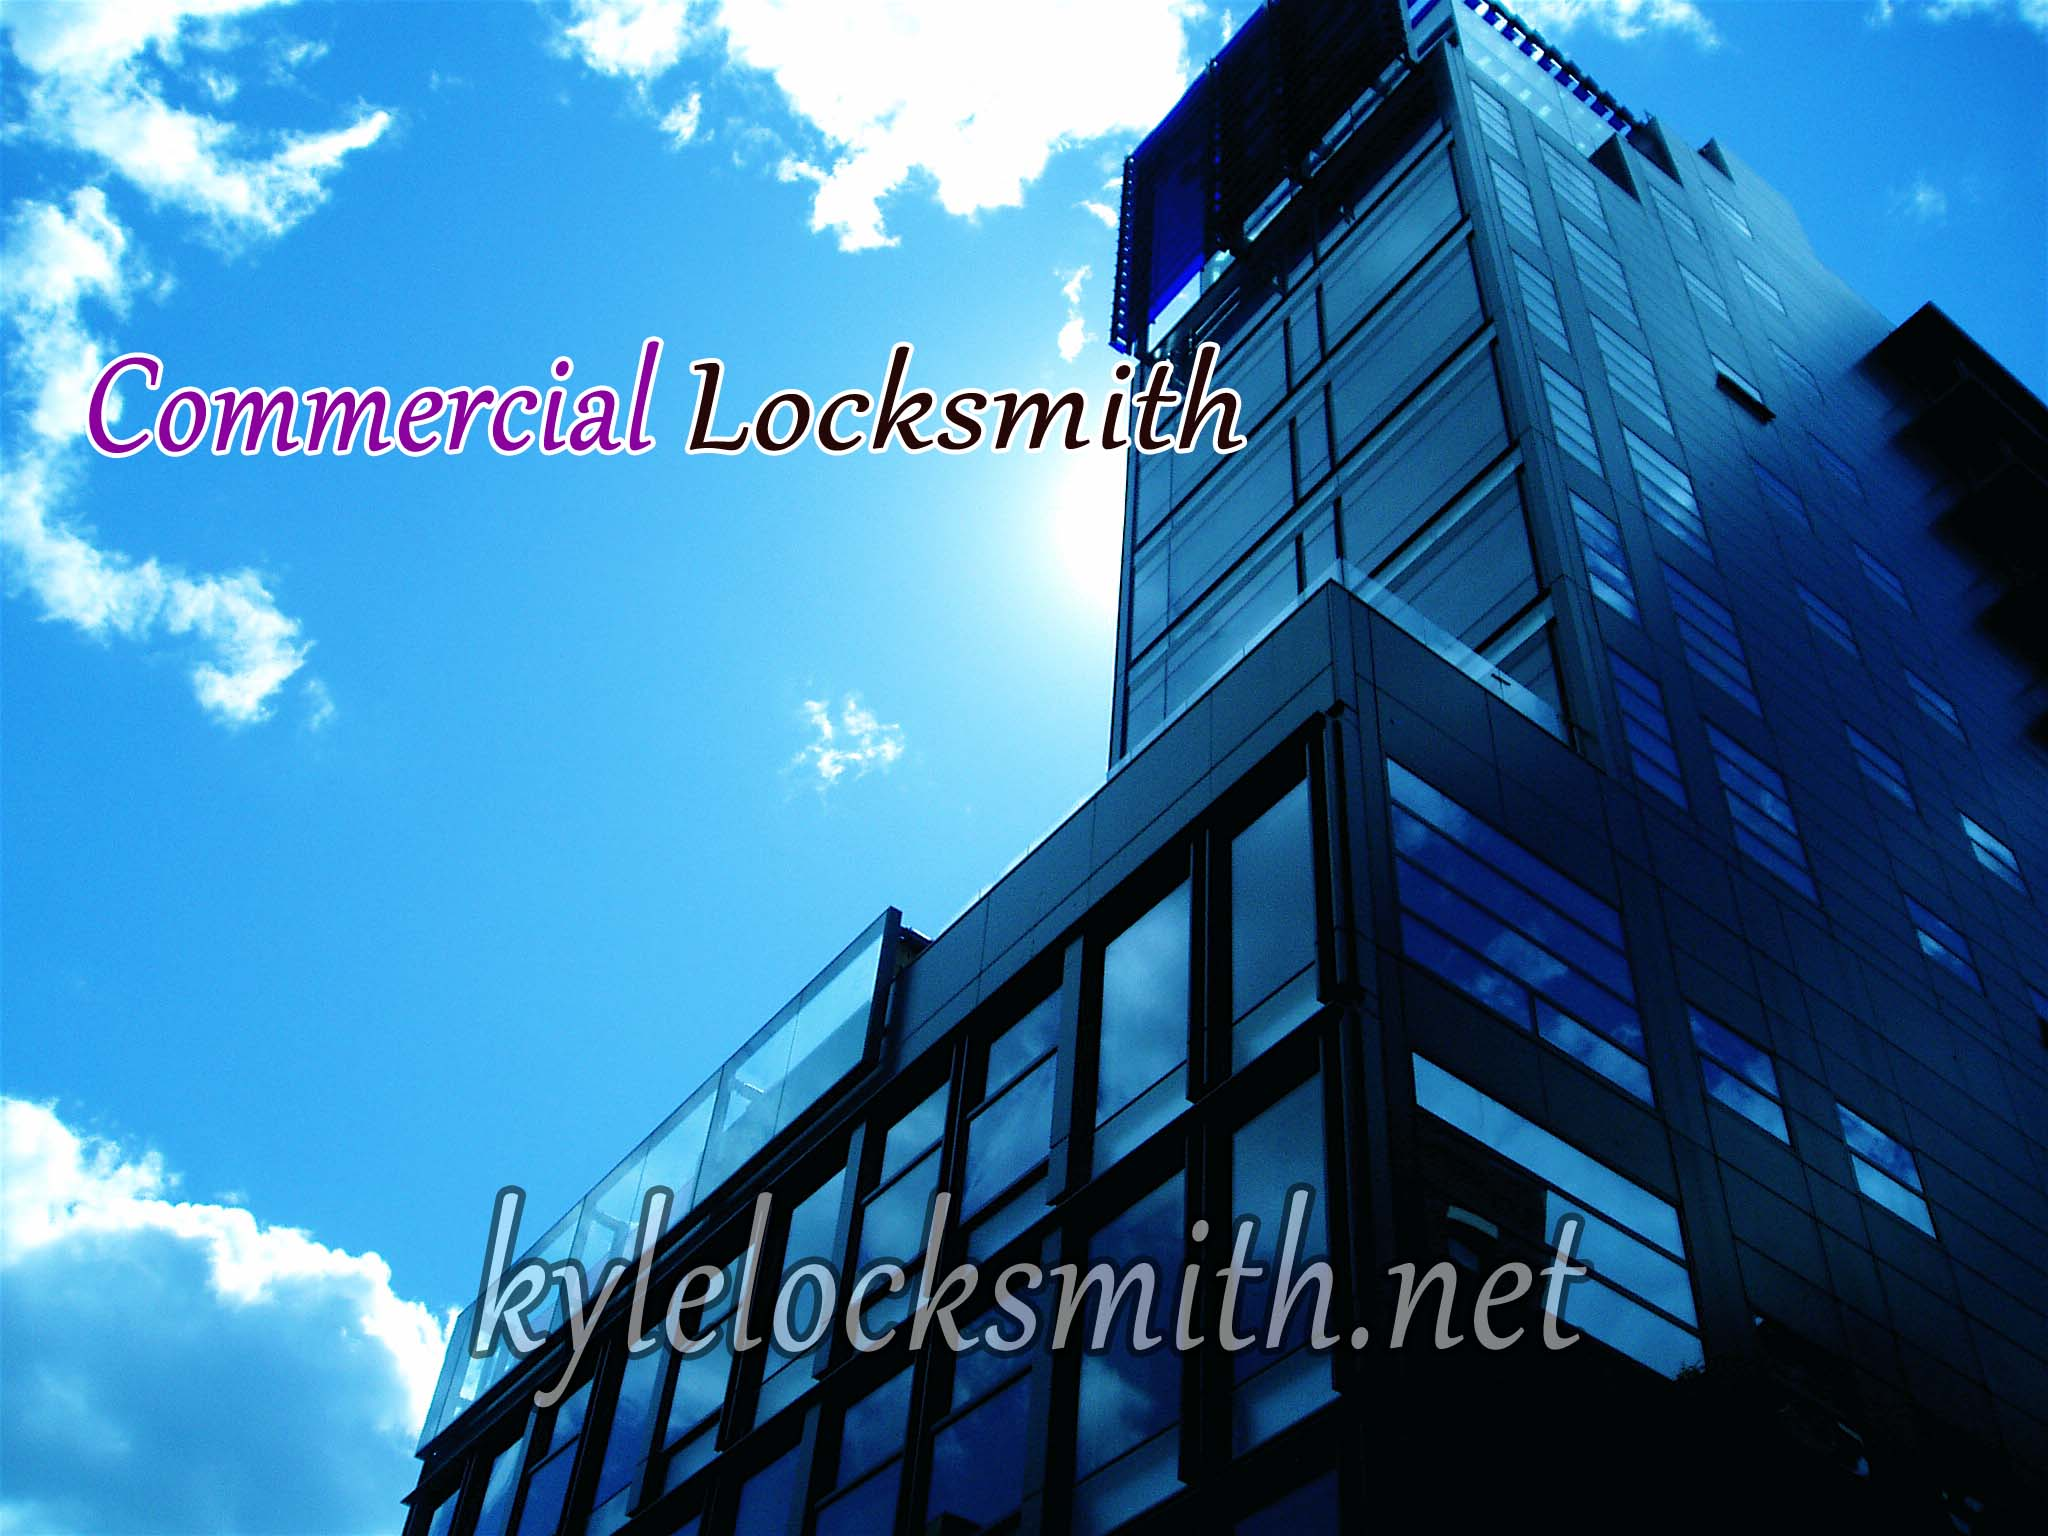 Kyle Commercial Locksmith